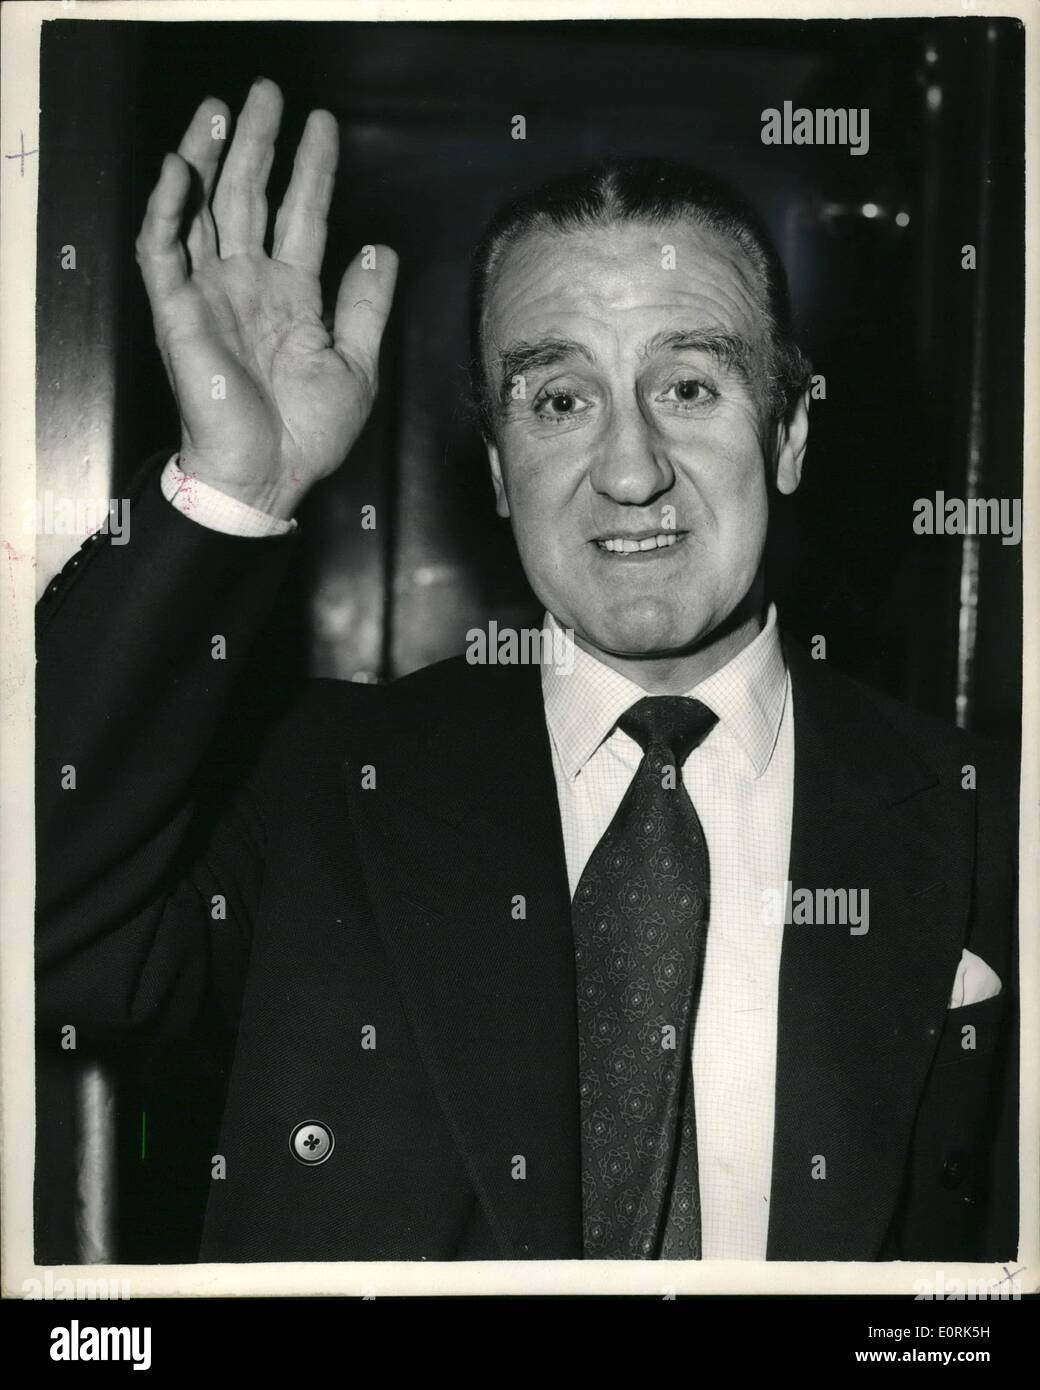 Dec. 12, 1959 - The Minister of Transport leaves for New York. He is to Study American traffic problems.: Mr. Ernest Marples the Minister of Transport left Waterloo Station this afterno aboard the Queen Elizabeth Boat Train for New He is going to study the New York Traffic proble soloutions. Photo shows Mr. Ernest Marples waves when he left waterloo this afternoon. - Stock Image